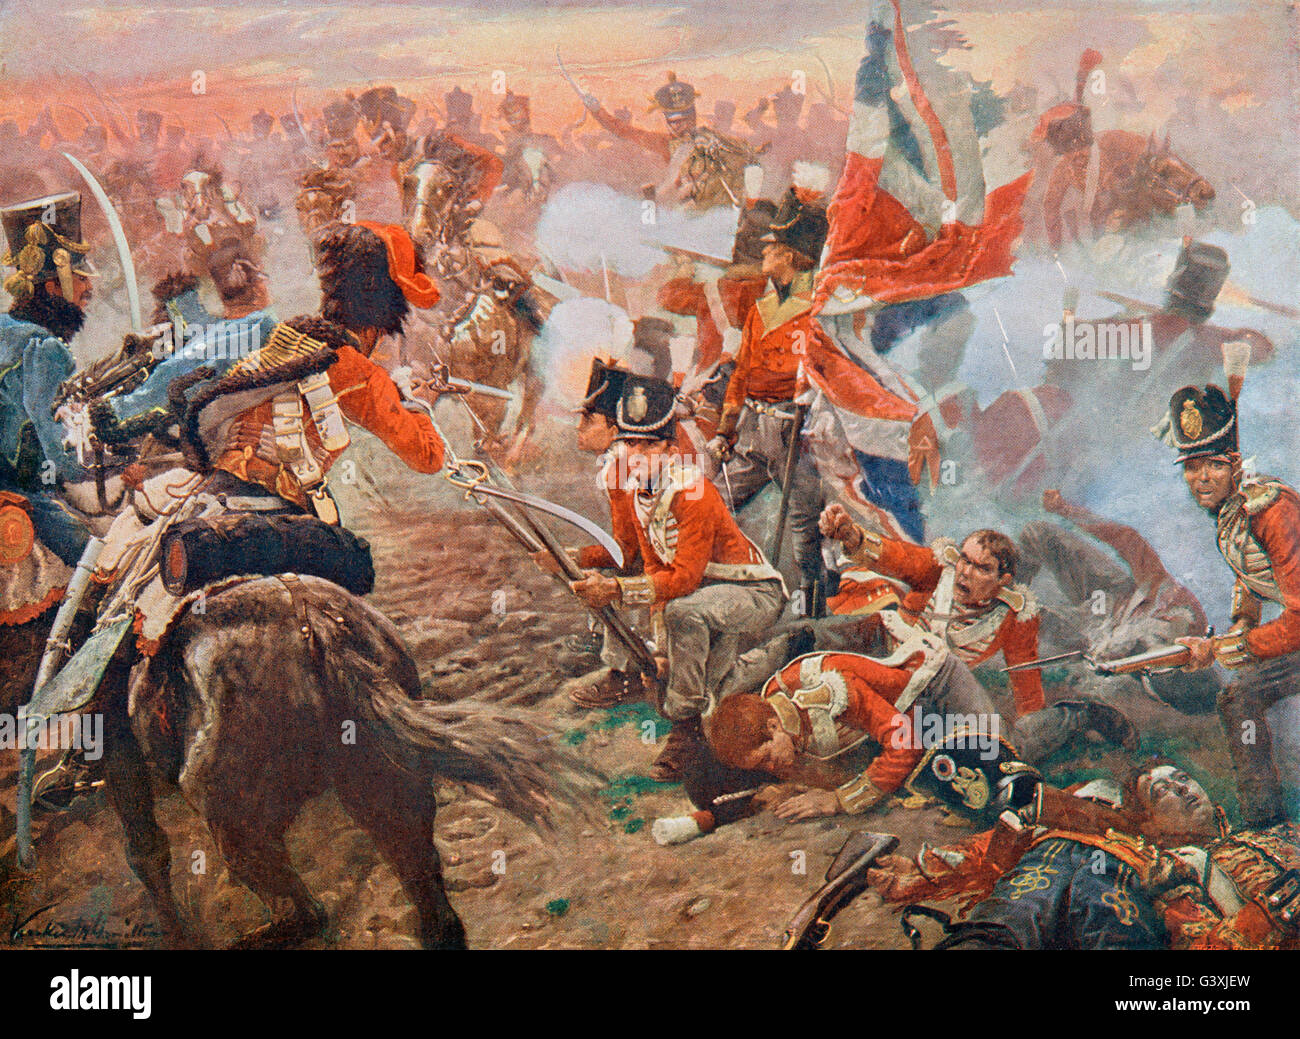 The Battle of Quatre Bras, Belgium, 16 June 1815. - Stock Image